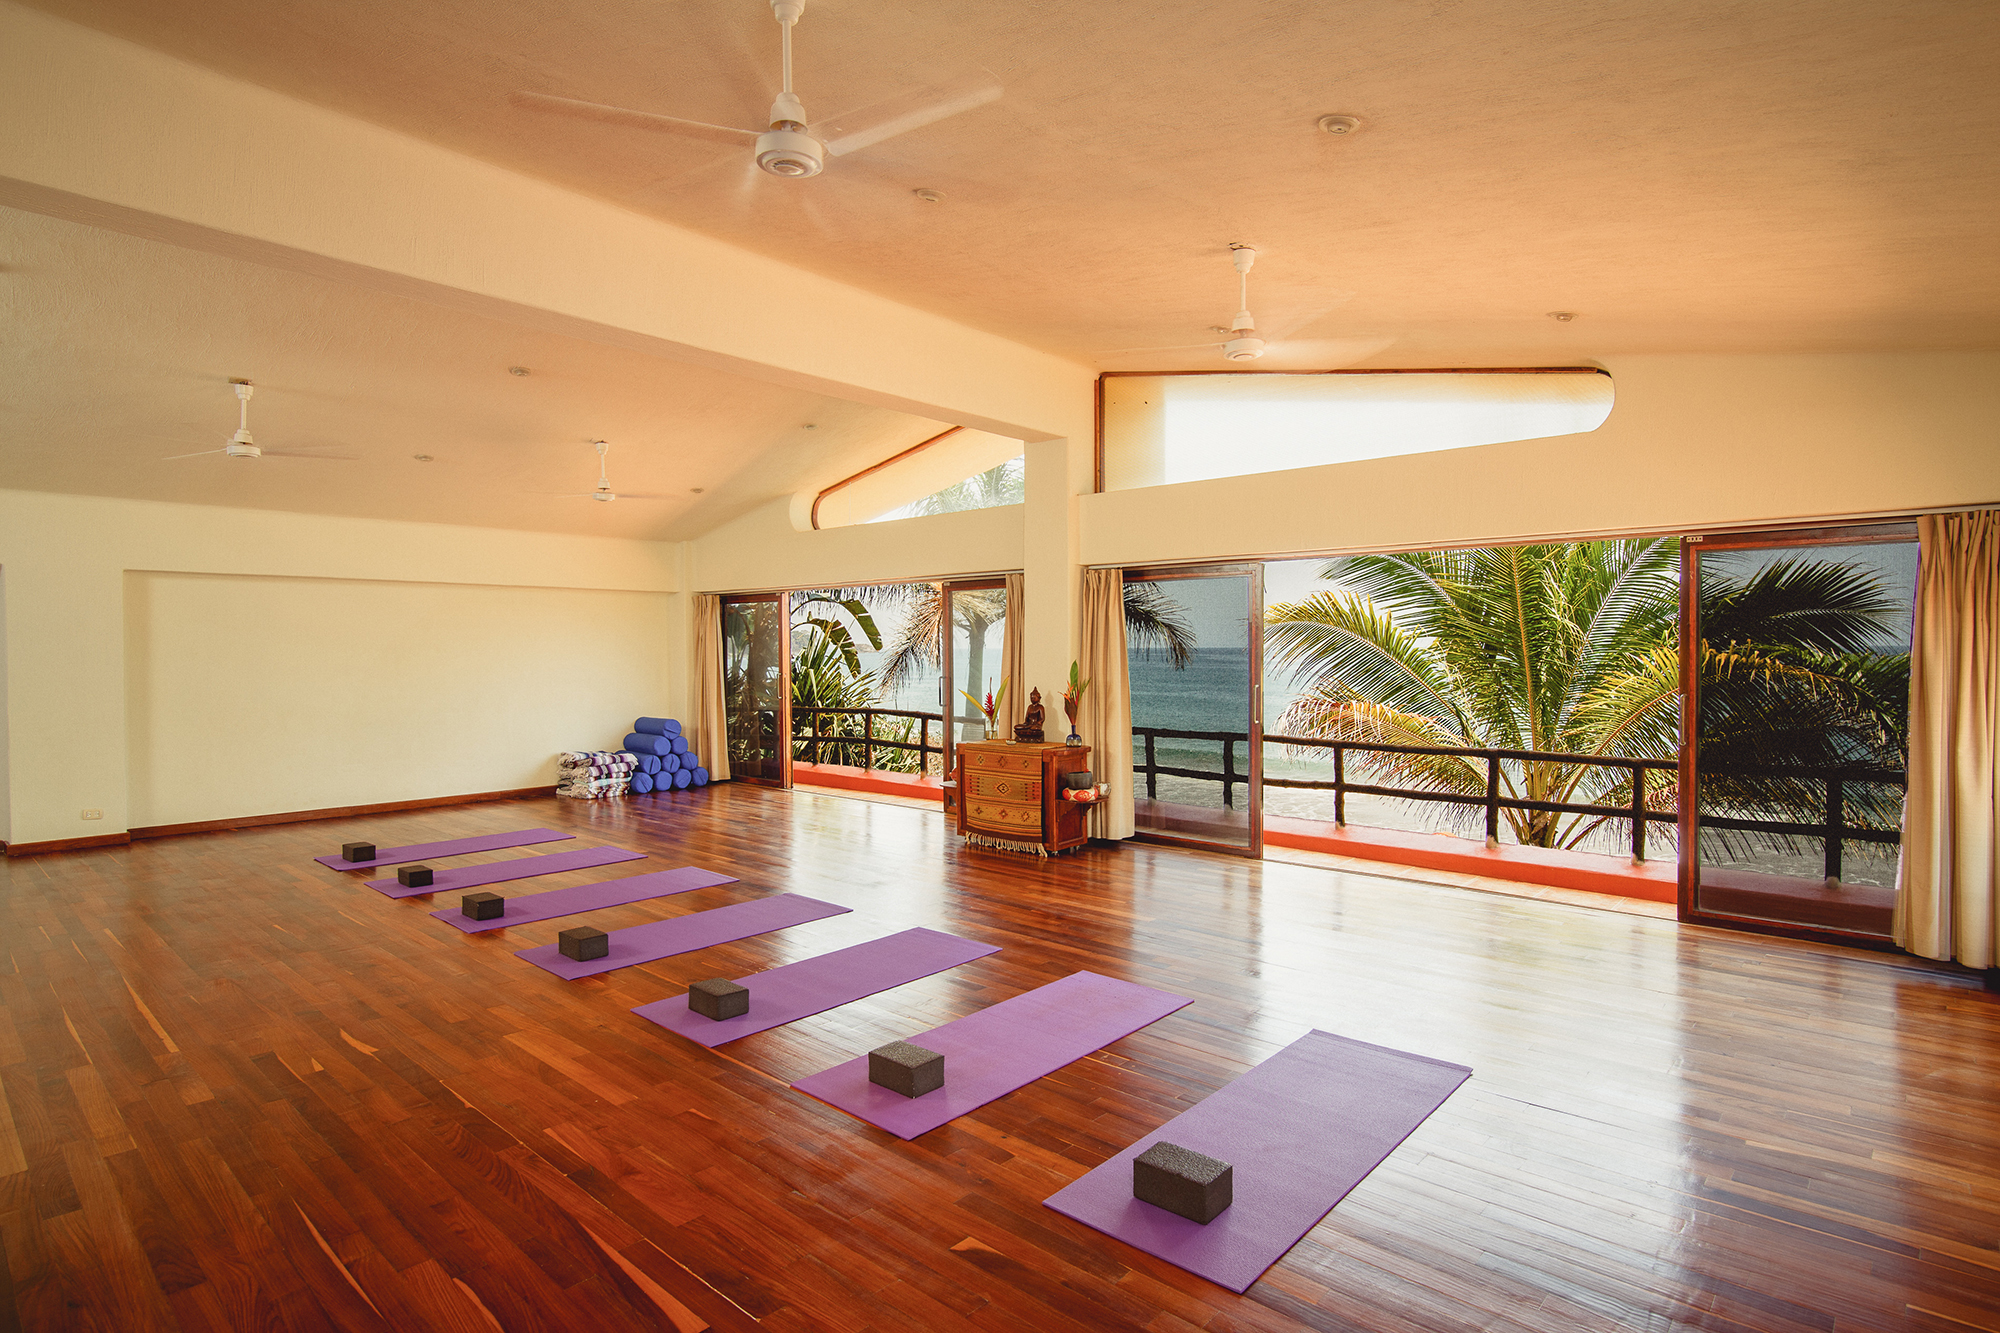 new-years-yoga-retreat-mexico-yoga-shala.jpg